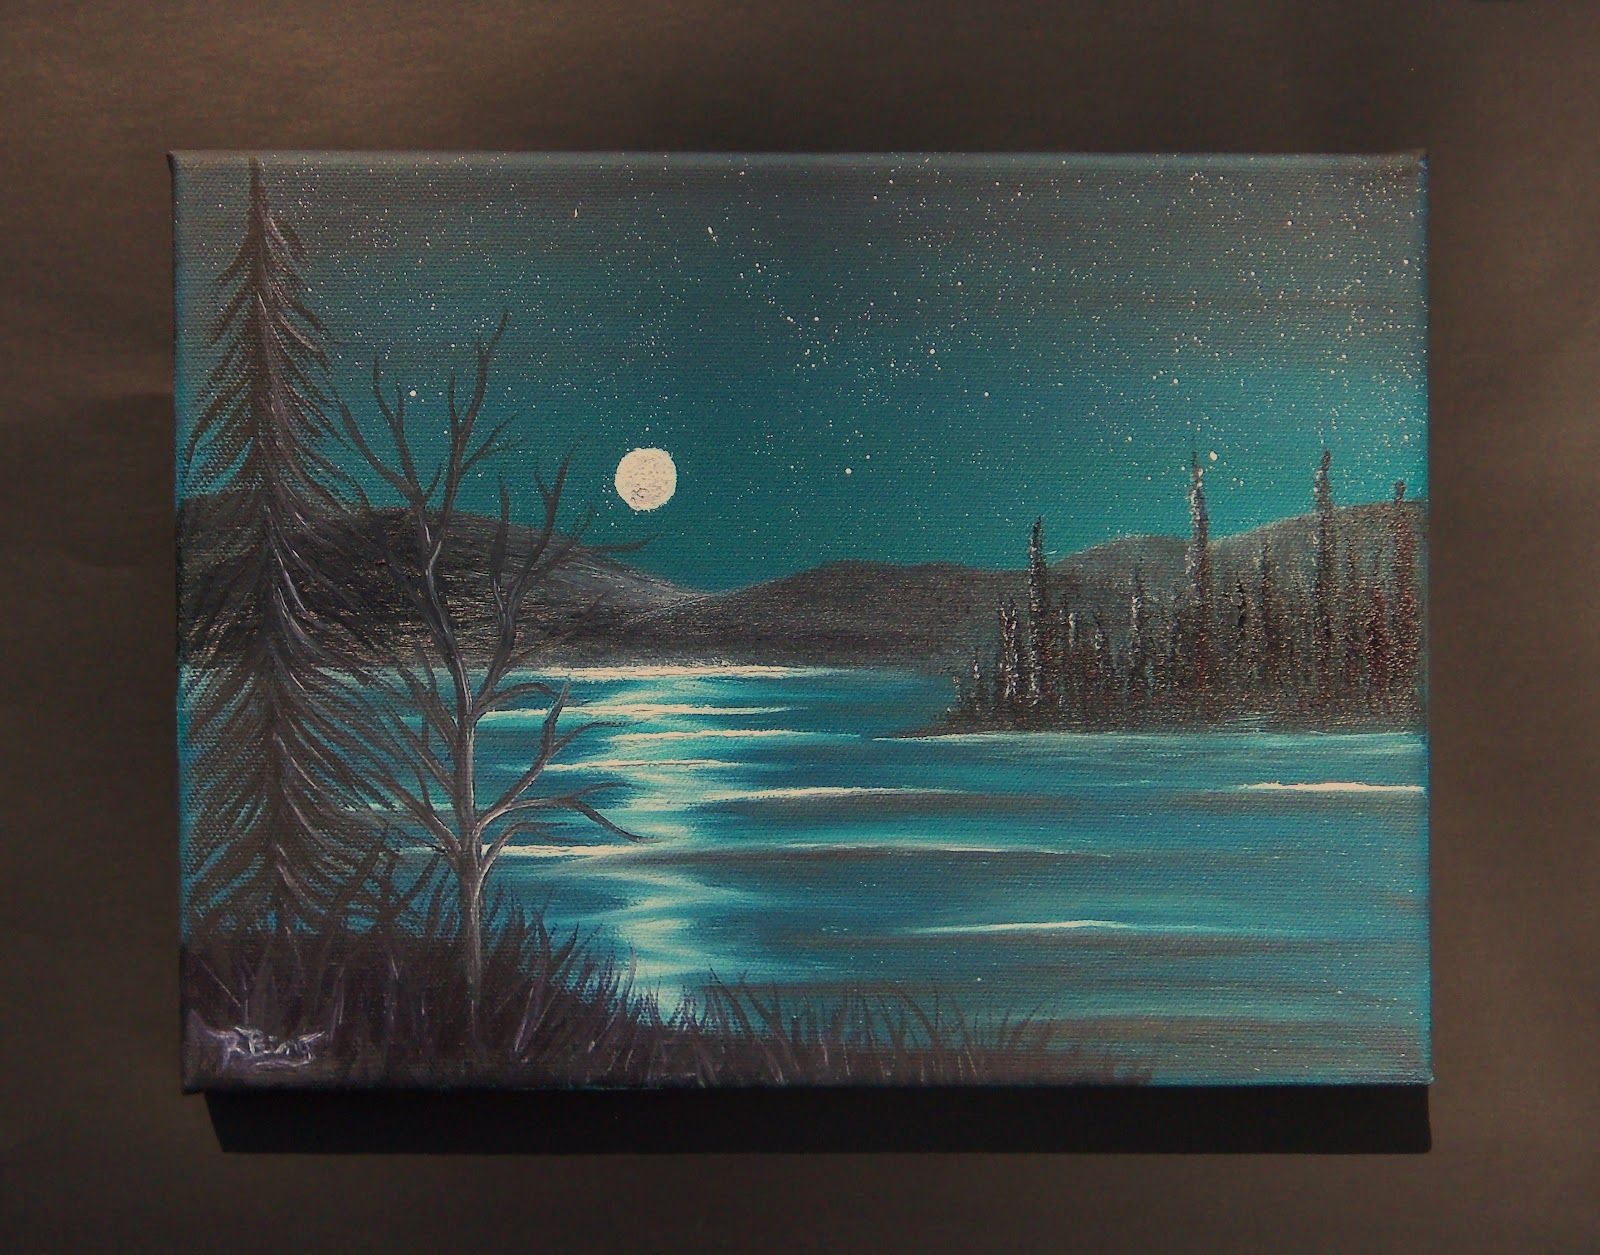 Painting On Black Canvas Youtube Google Search Black Canvas Paintings Oil Painting Landscape Painting